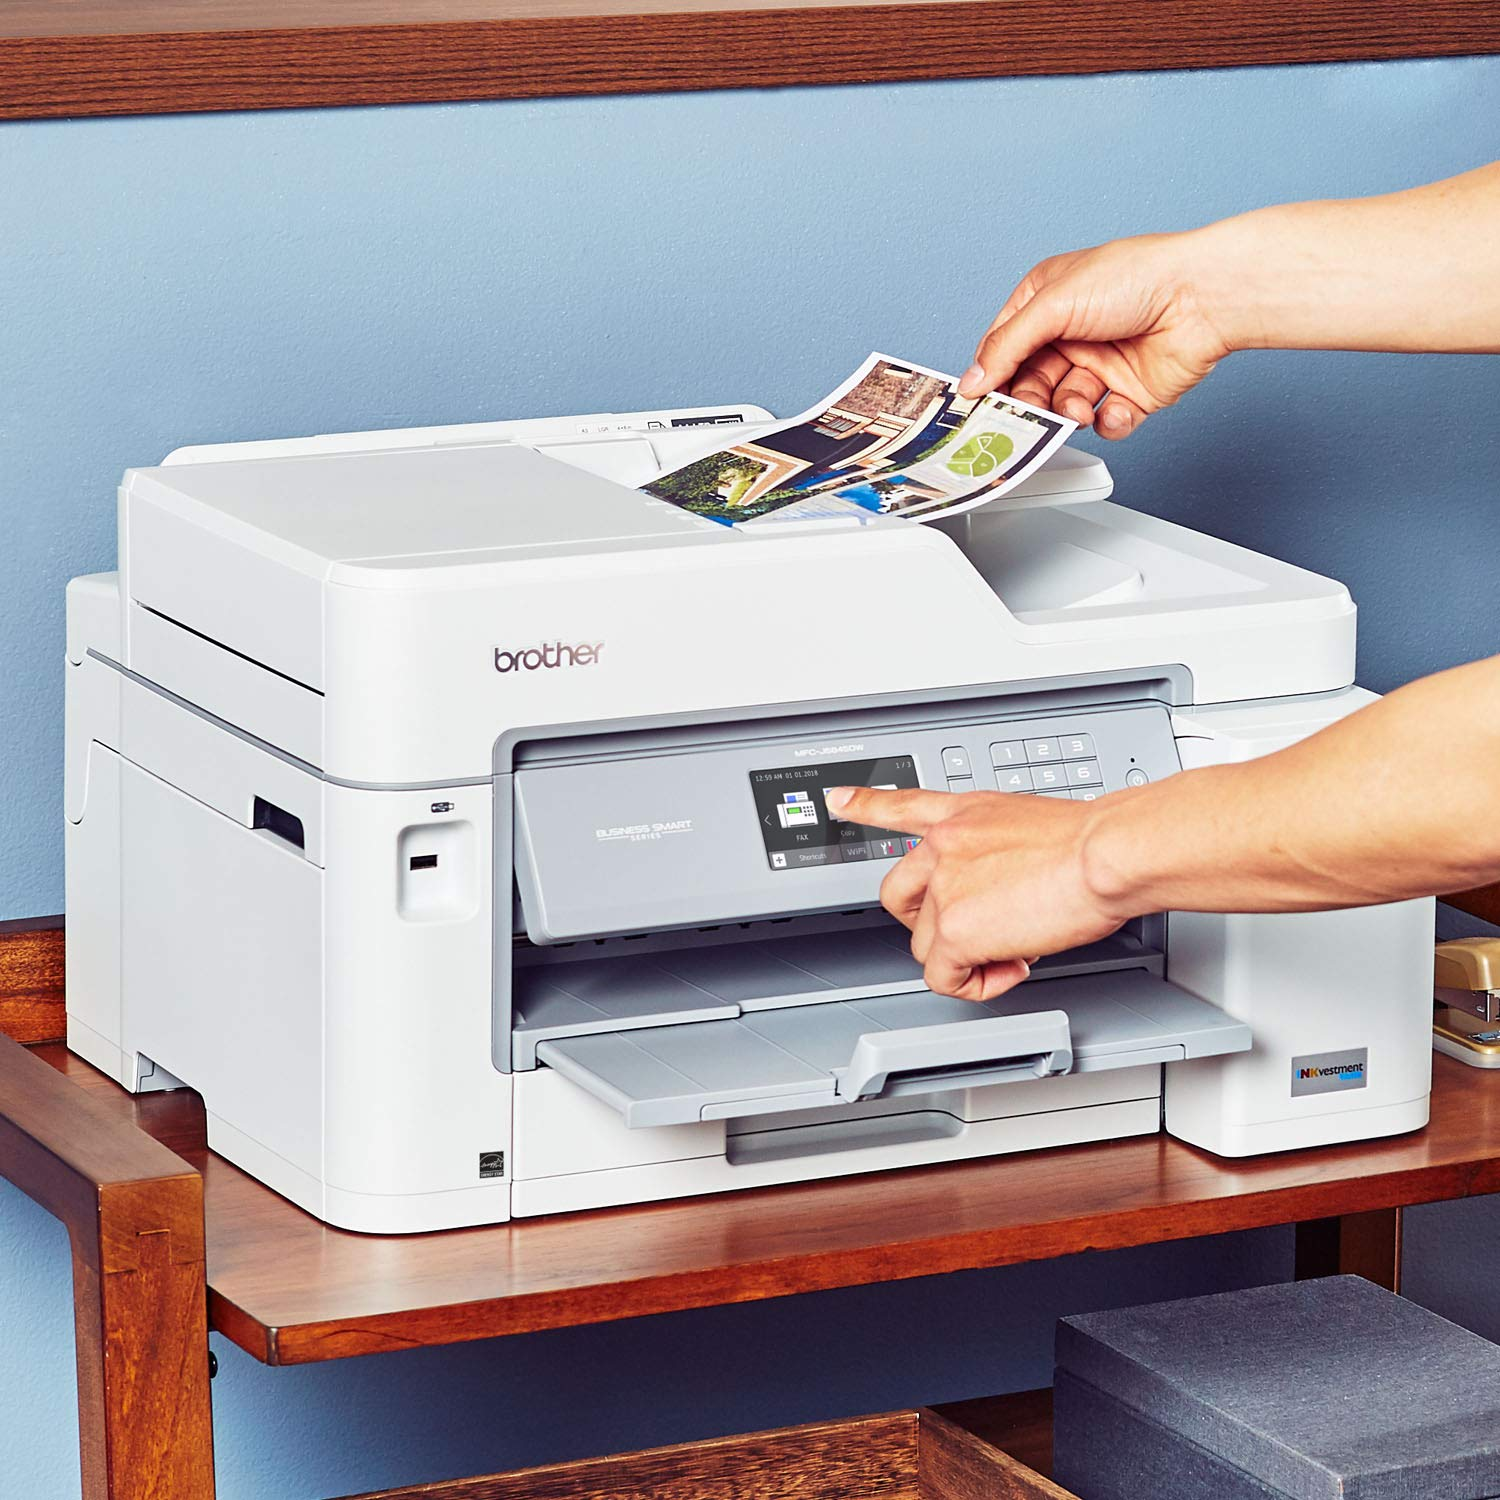 Brother Inkjet Printer, MFC-J5845DW, INKvestment Color Inkjet All-in-One Printer with Wireless, Duplex Printing and Up to 1-Year of Ink in-Box, Amazon Dash Replenishment Enabled by Brother (Image #5)